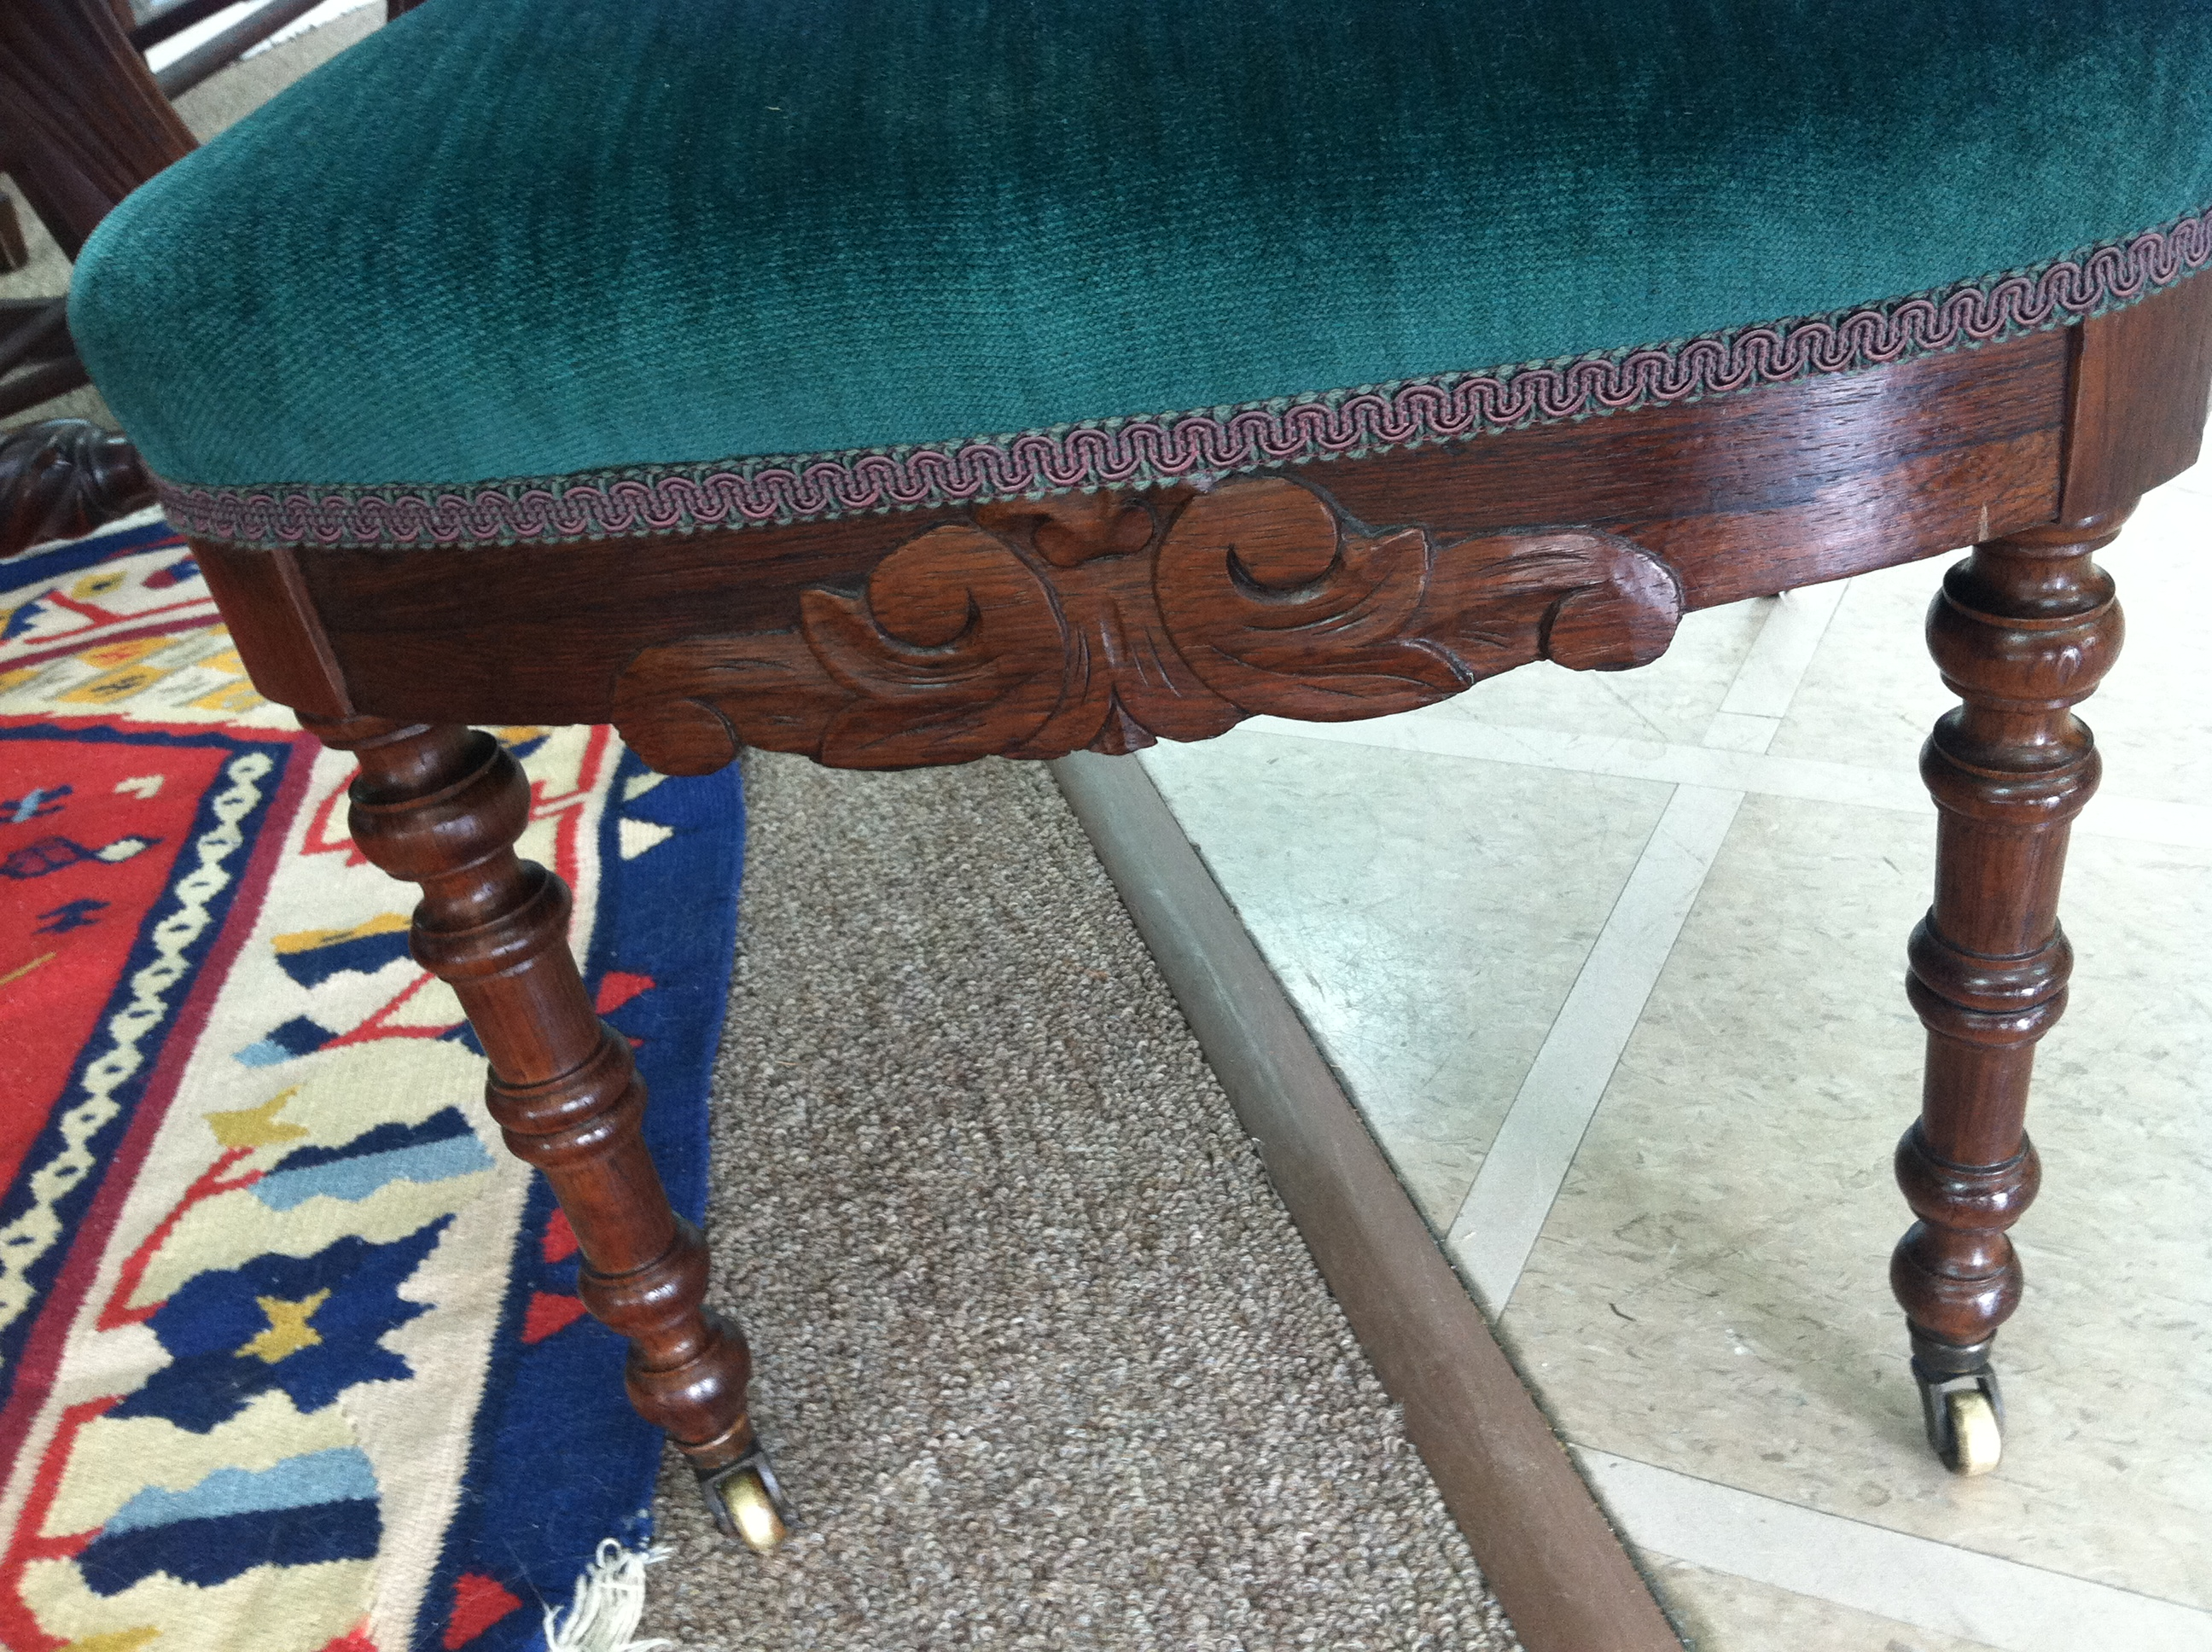 Antique victorian parlor chairs - Offered Here Is A Gorgeous Antique Victorian Rosewood Carved Parlor Chair Circa 1880 This Piece Is In Excellent Condition It Features Ornately Carved